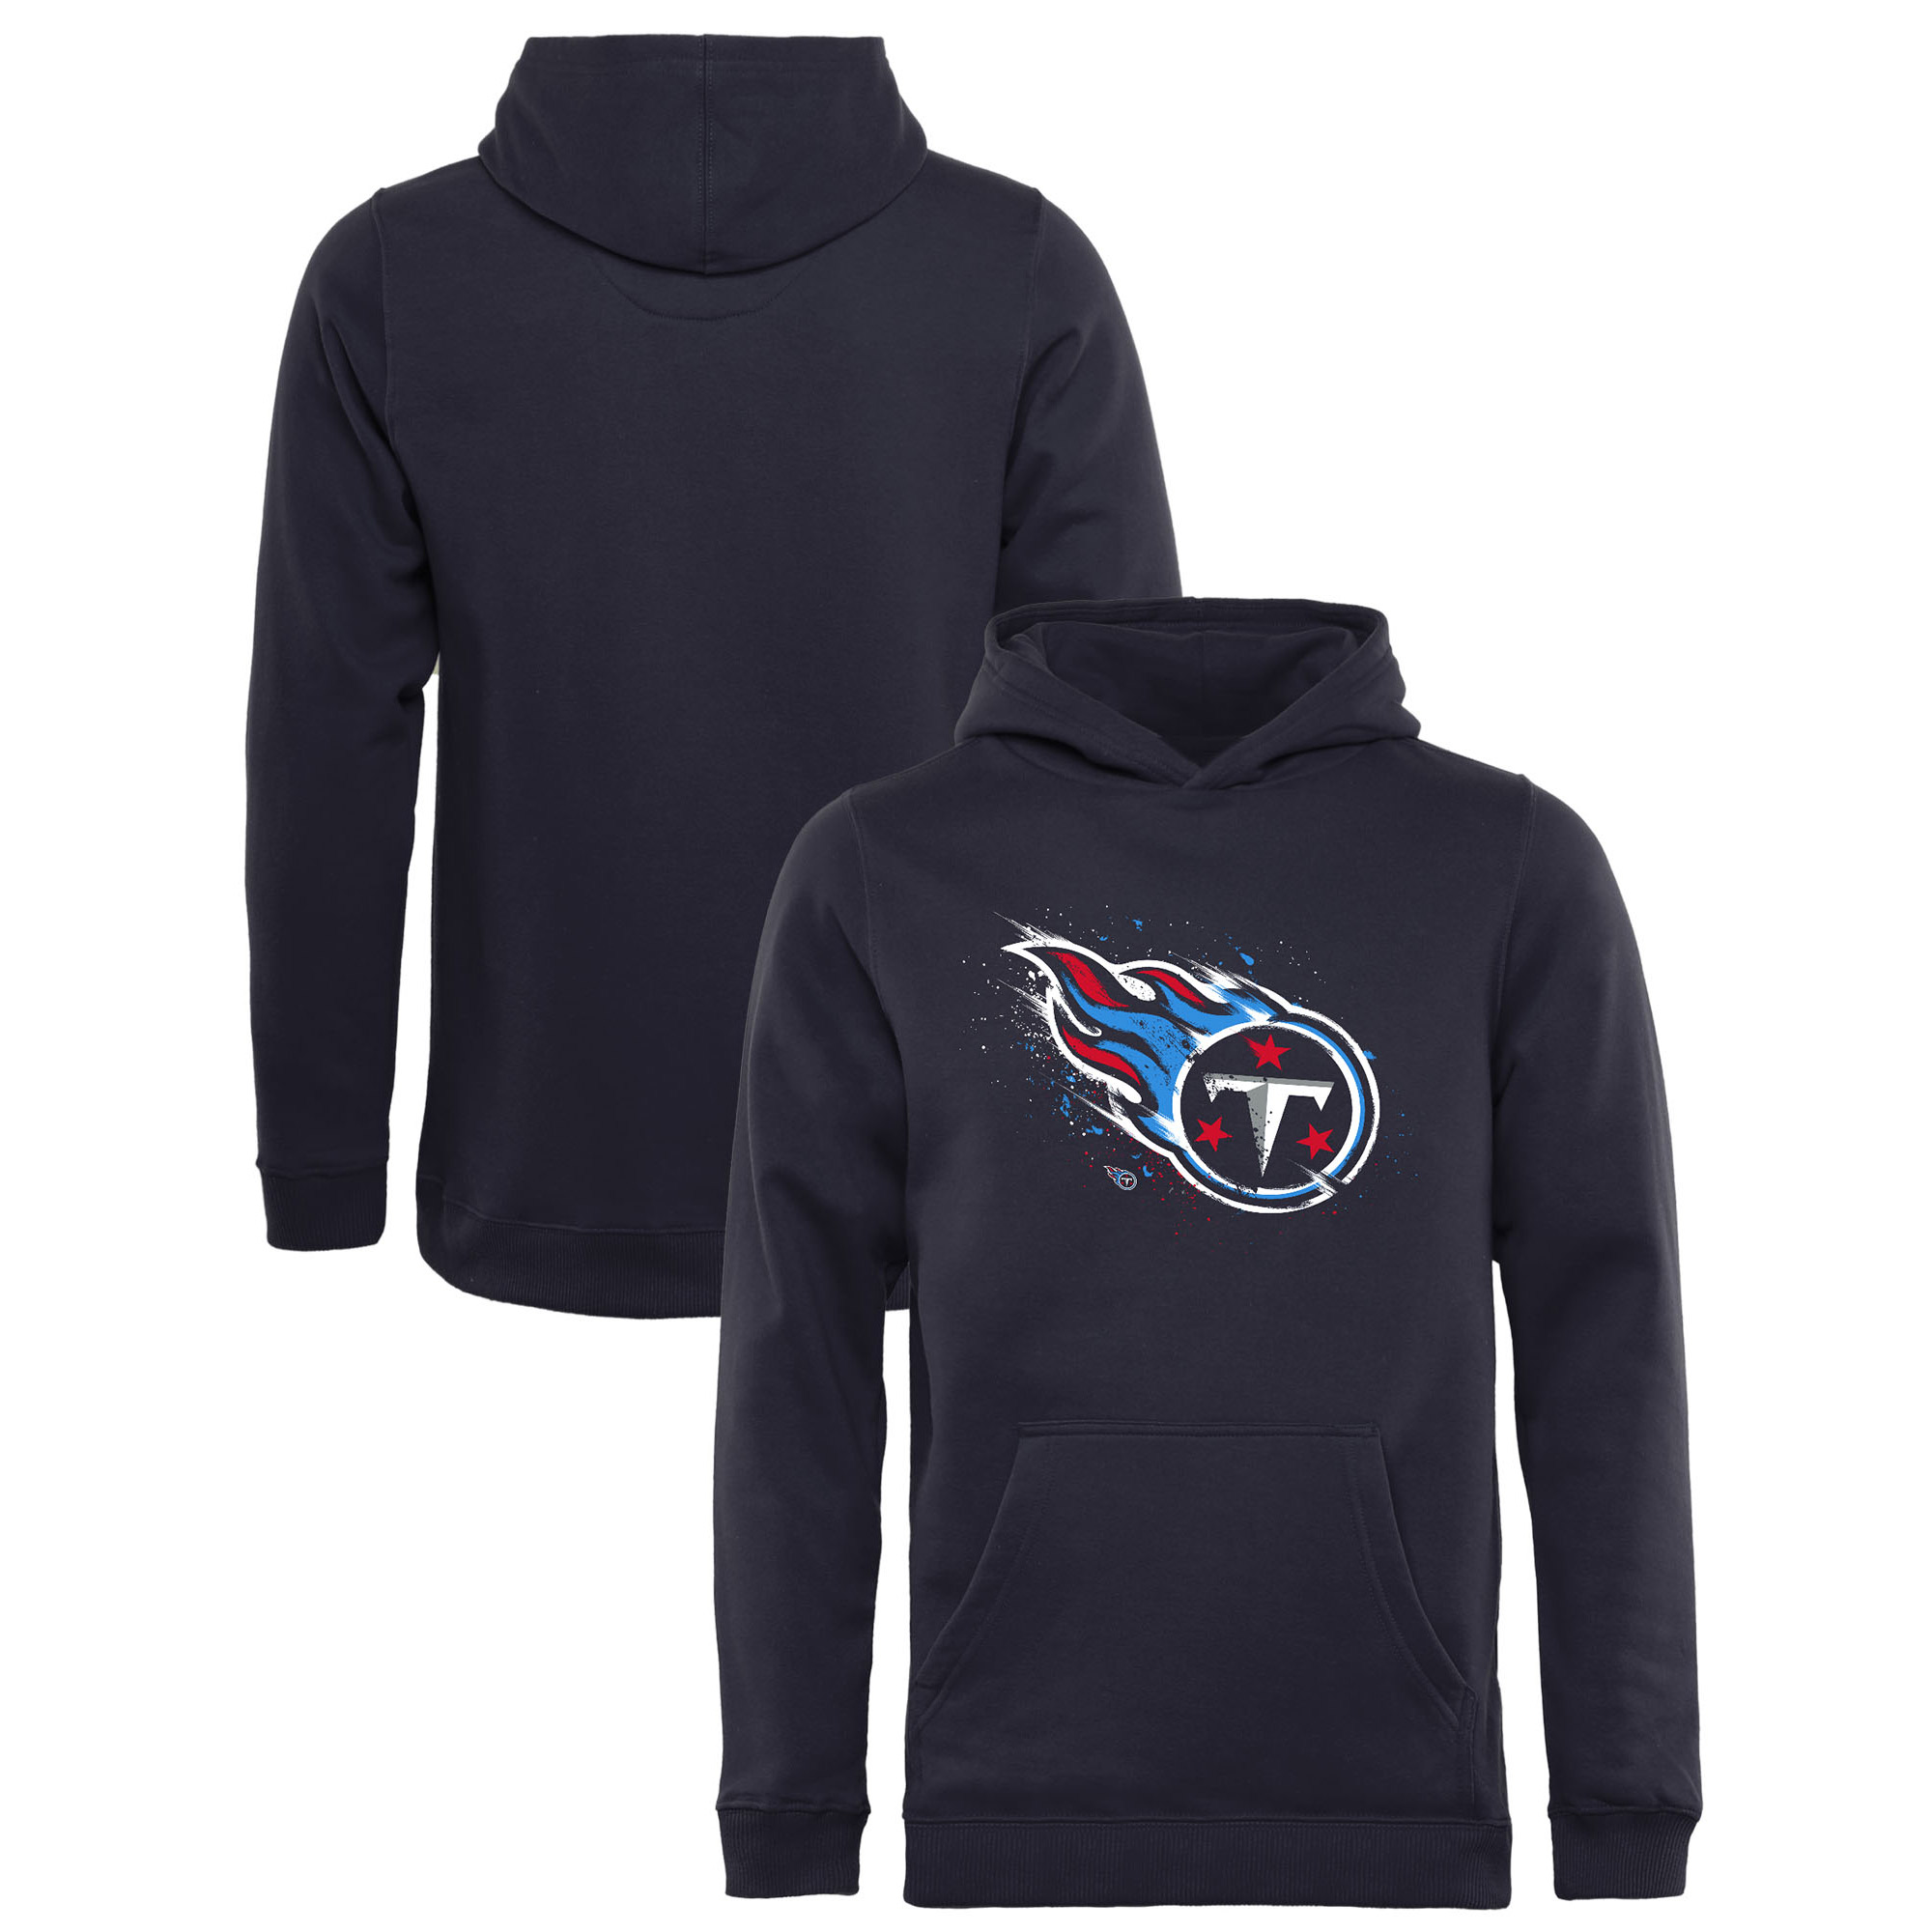 Tennessee Titans NFL Pro Line by Fanatics Branded Youth Splatter Logo Pullover Hoodie - Navy